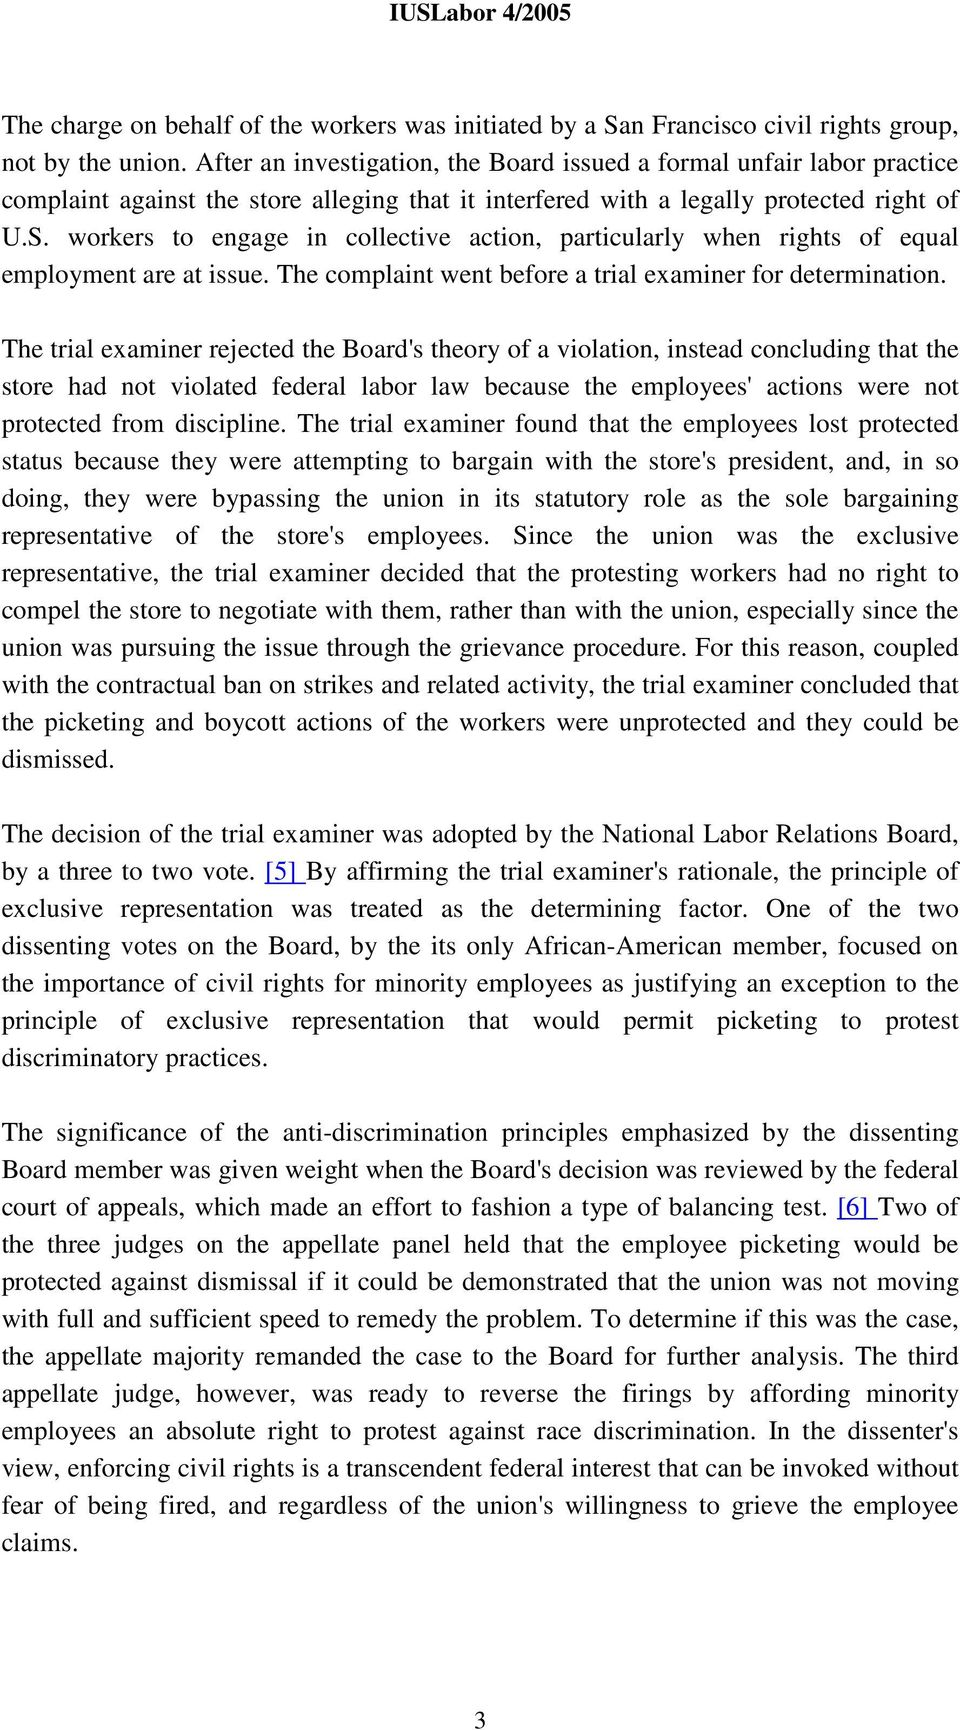 workers to engage in collective action, particularly when rights of equal employment are at issue. The complaint went before a trial examiner for determination.